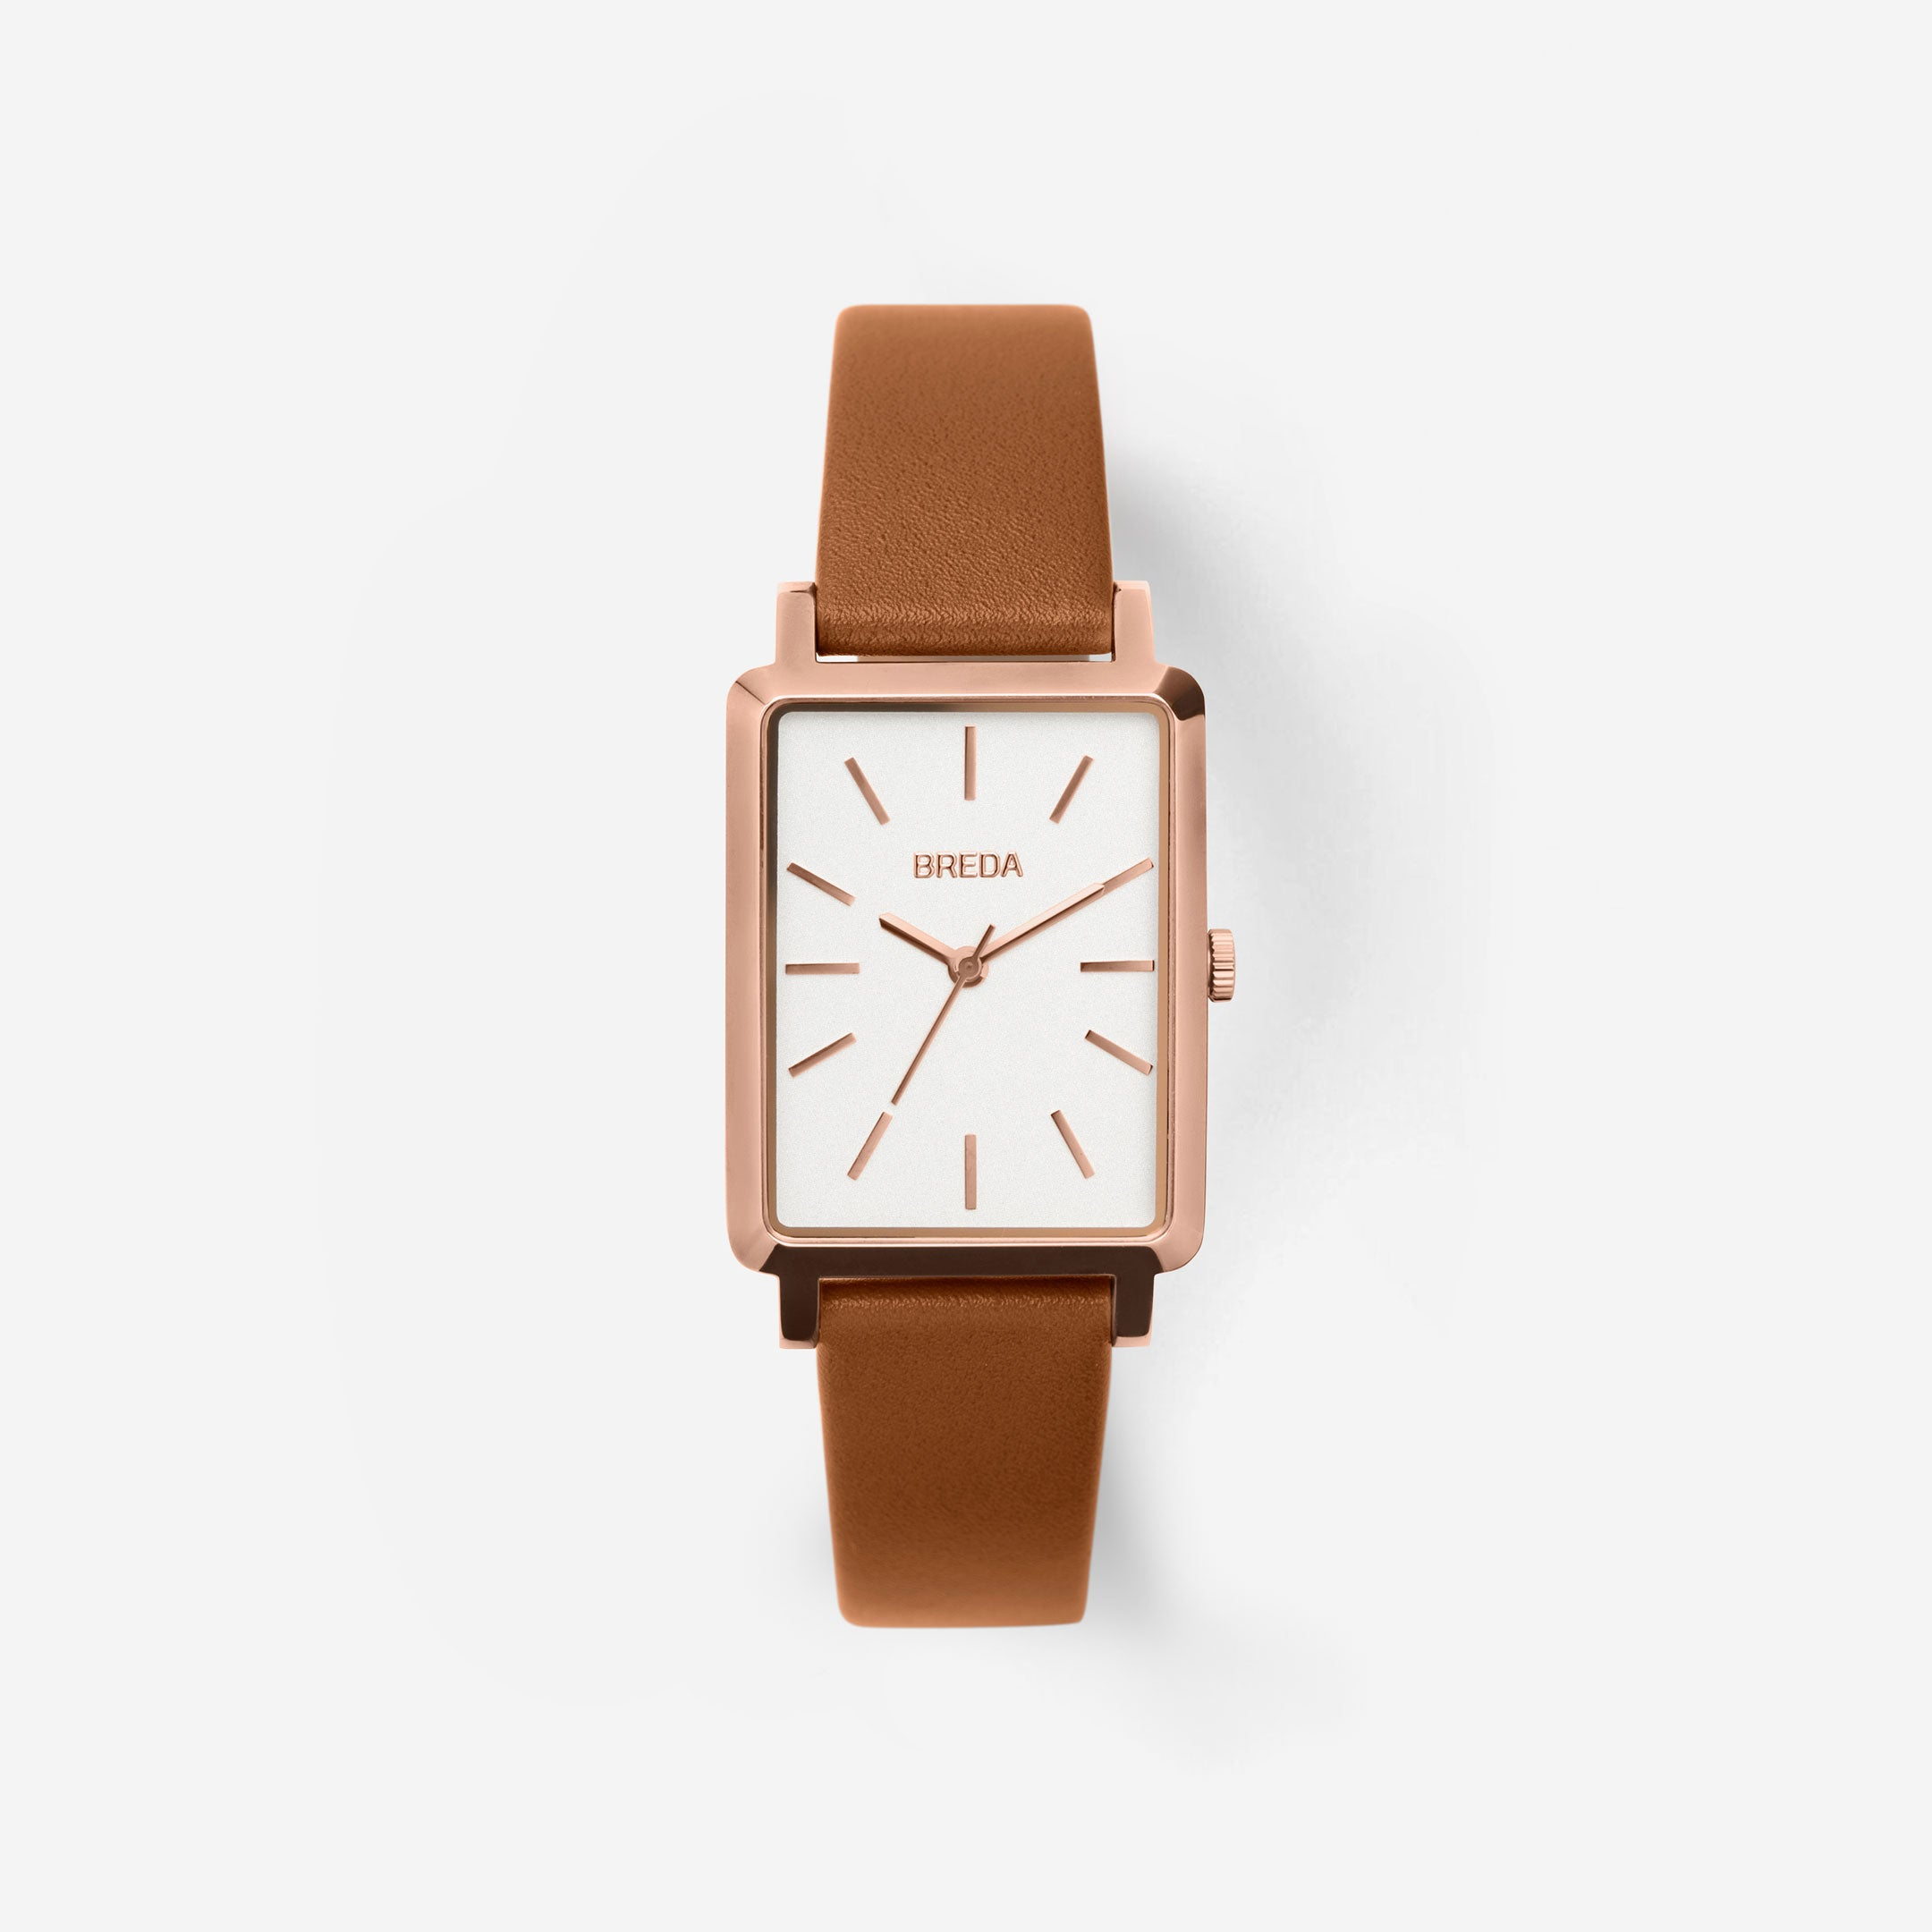 //cdn.shopify.com/s/files/1/0879/6650/products/breda-baer-1729d-rosegold-brown-leather-watch-front_1024x1024.jpg?v=1543253607